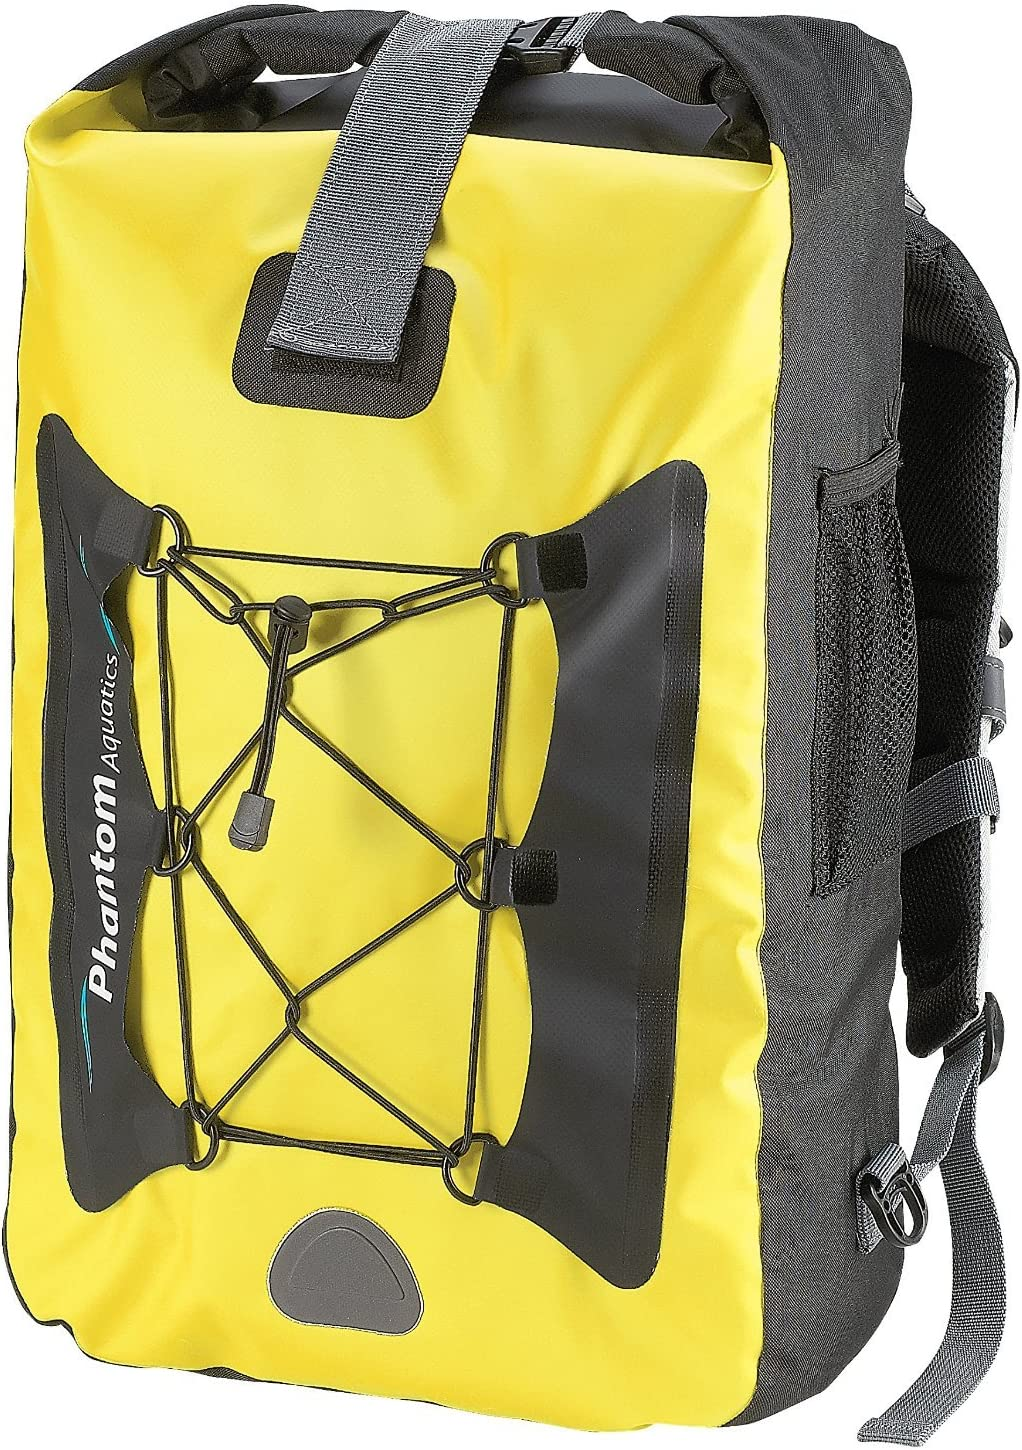 Phantom Aquatics Premium Waterproof Backpack Dry Bag